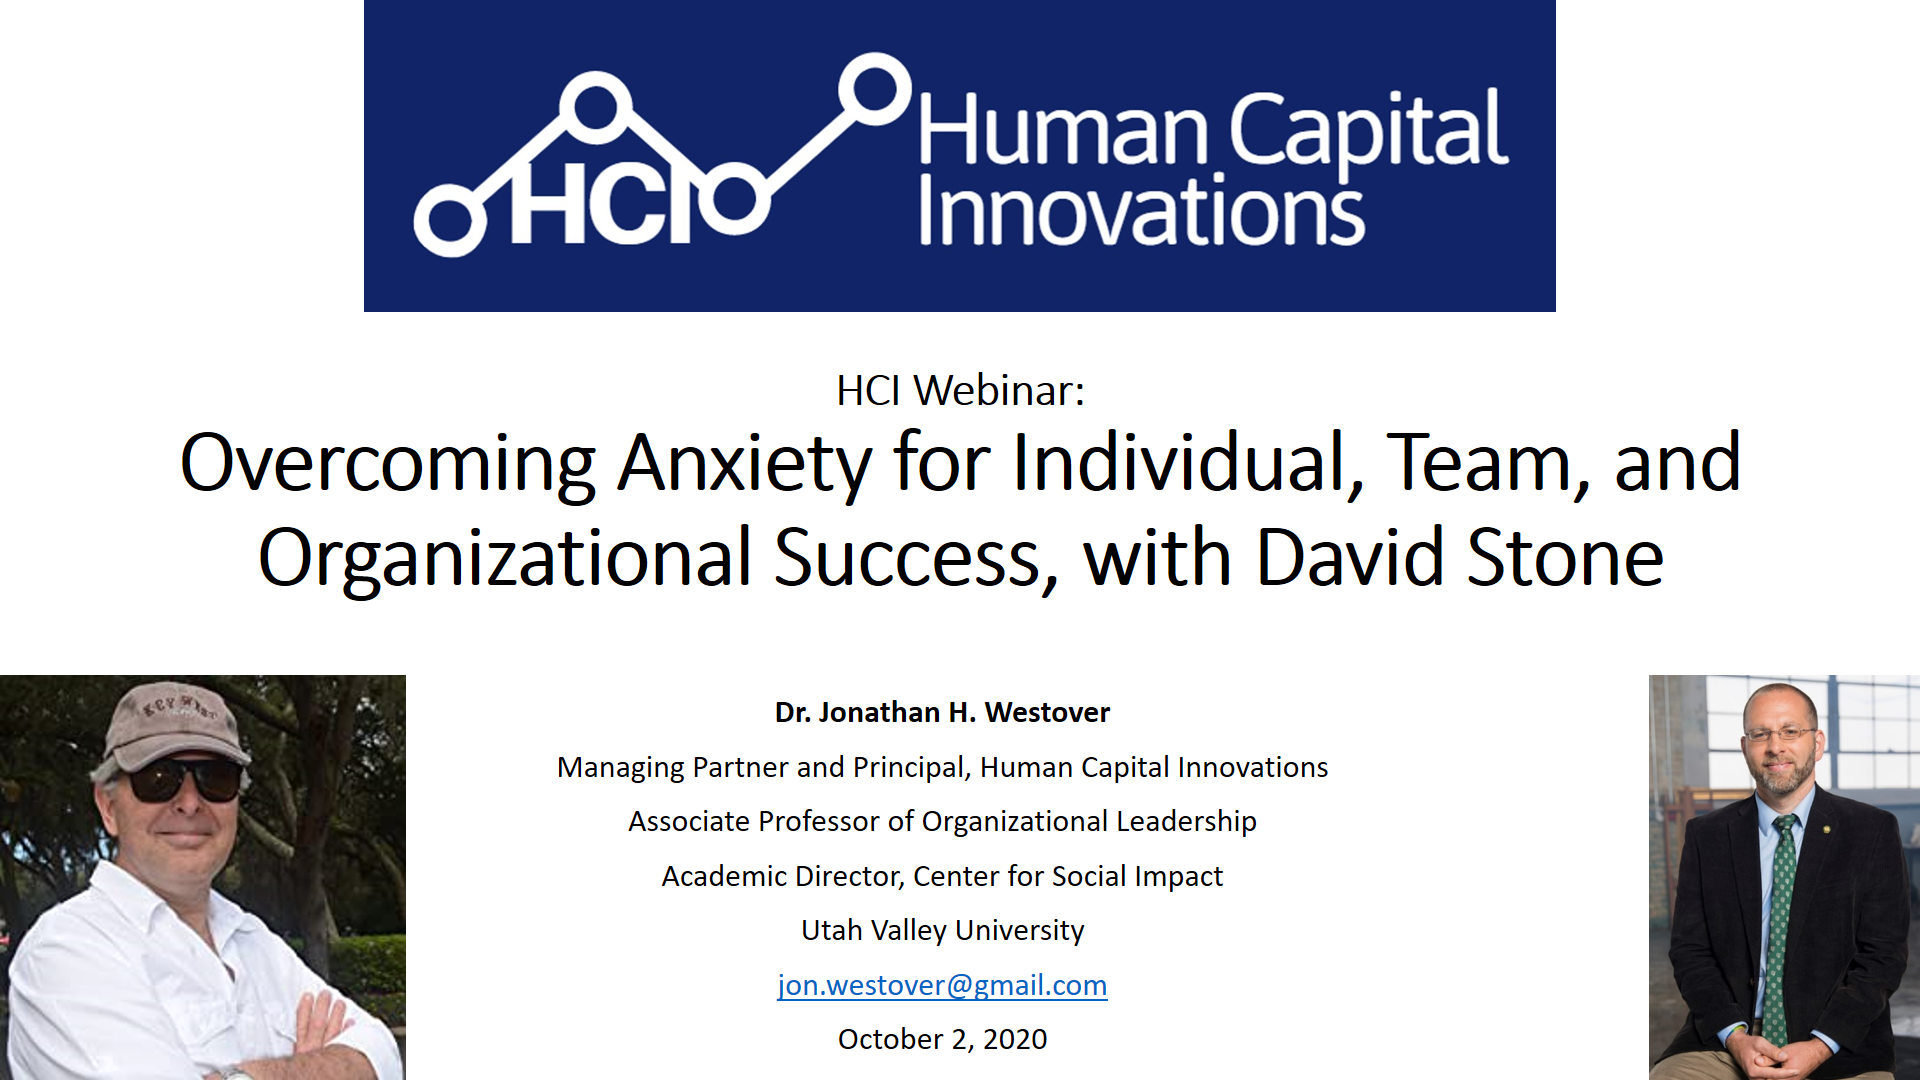 Overcoming Anxiety for Individual, Team, and Organizational Success